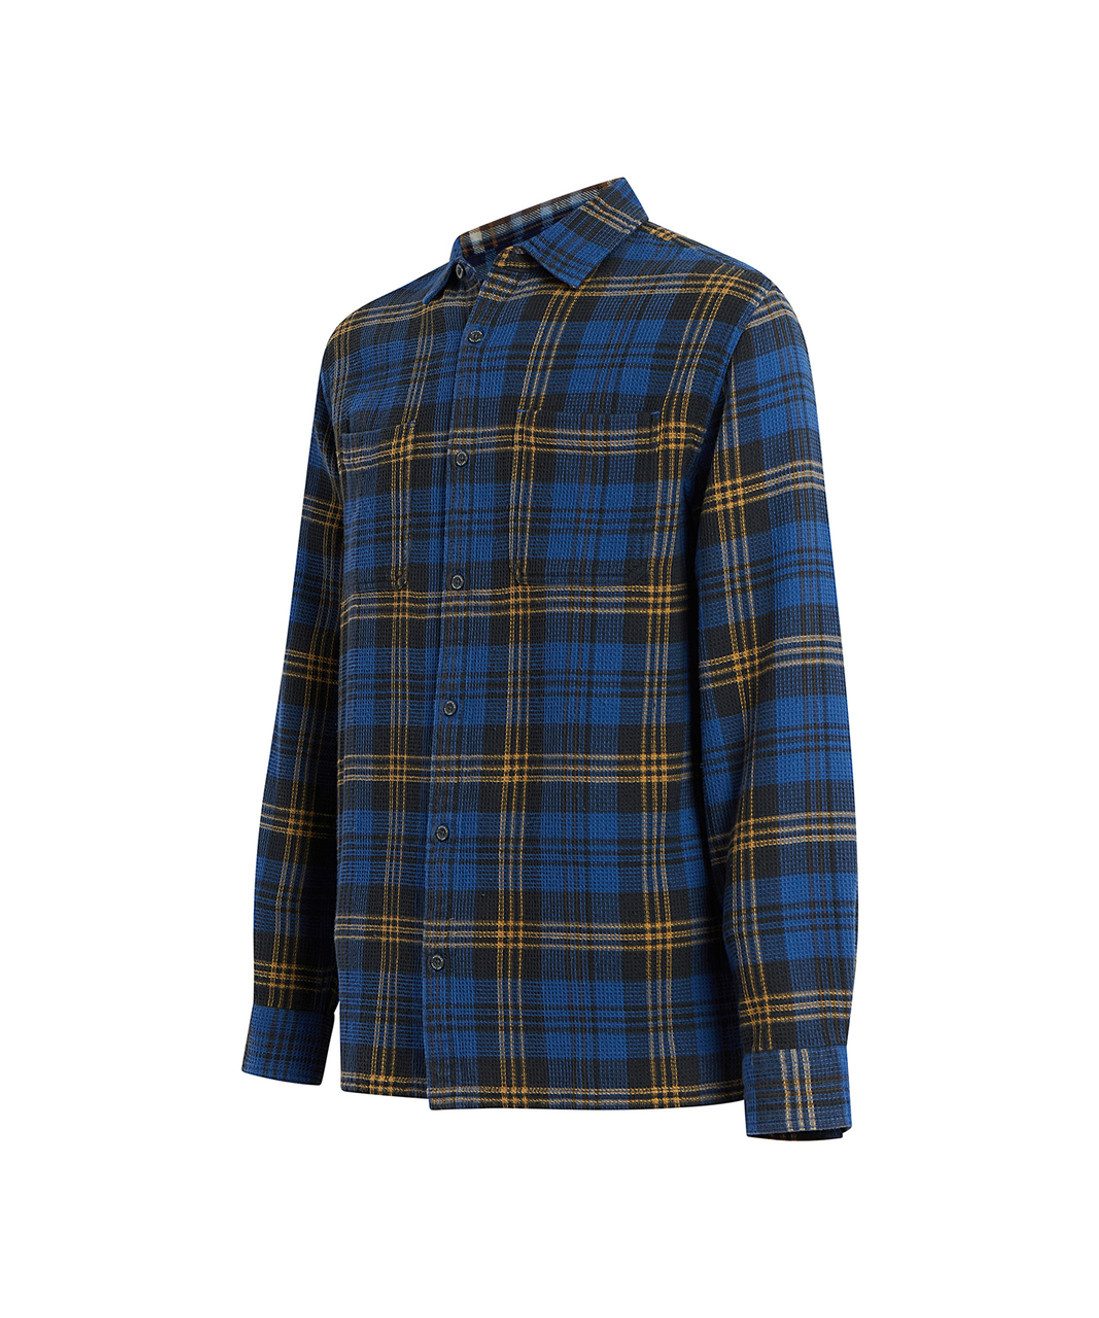 Men's Dellaro Waffle Plaid Shirt - 100% Organic Cotton